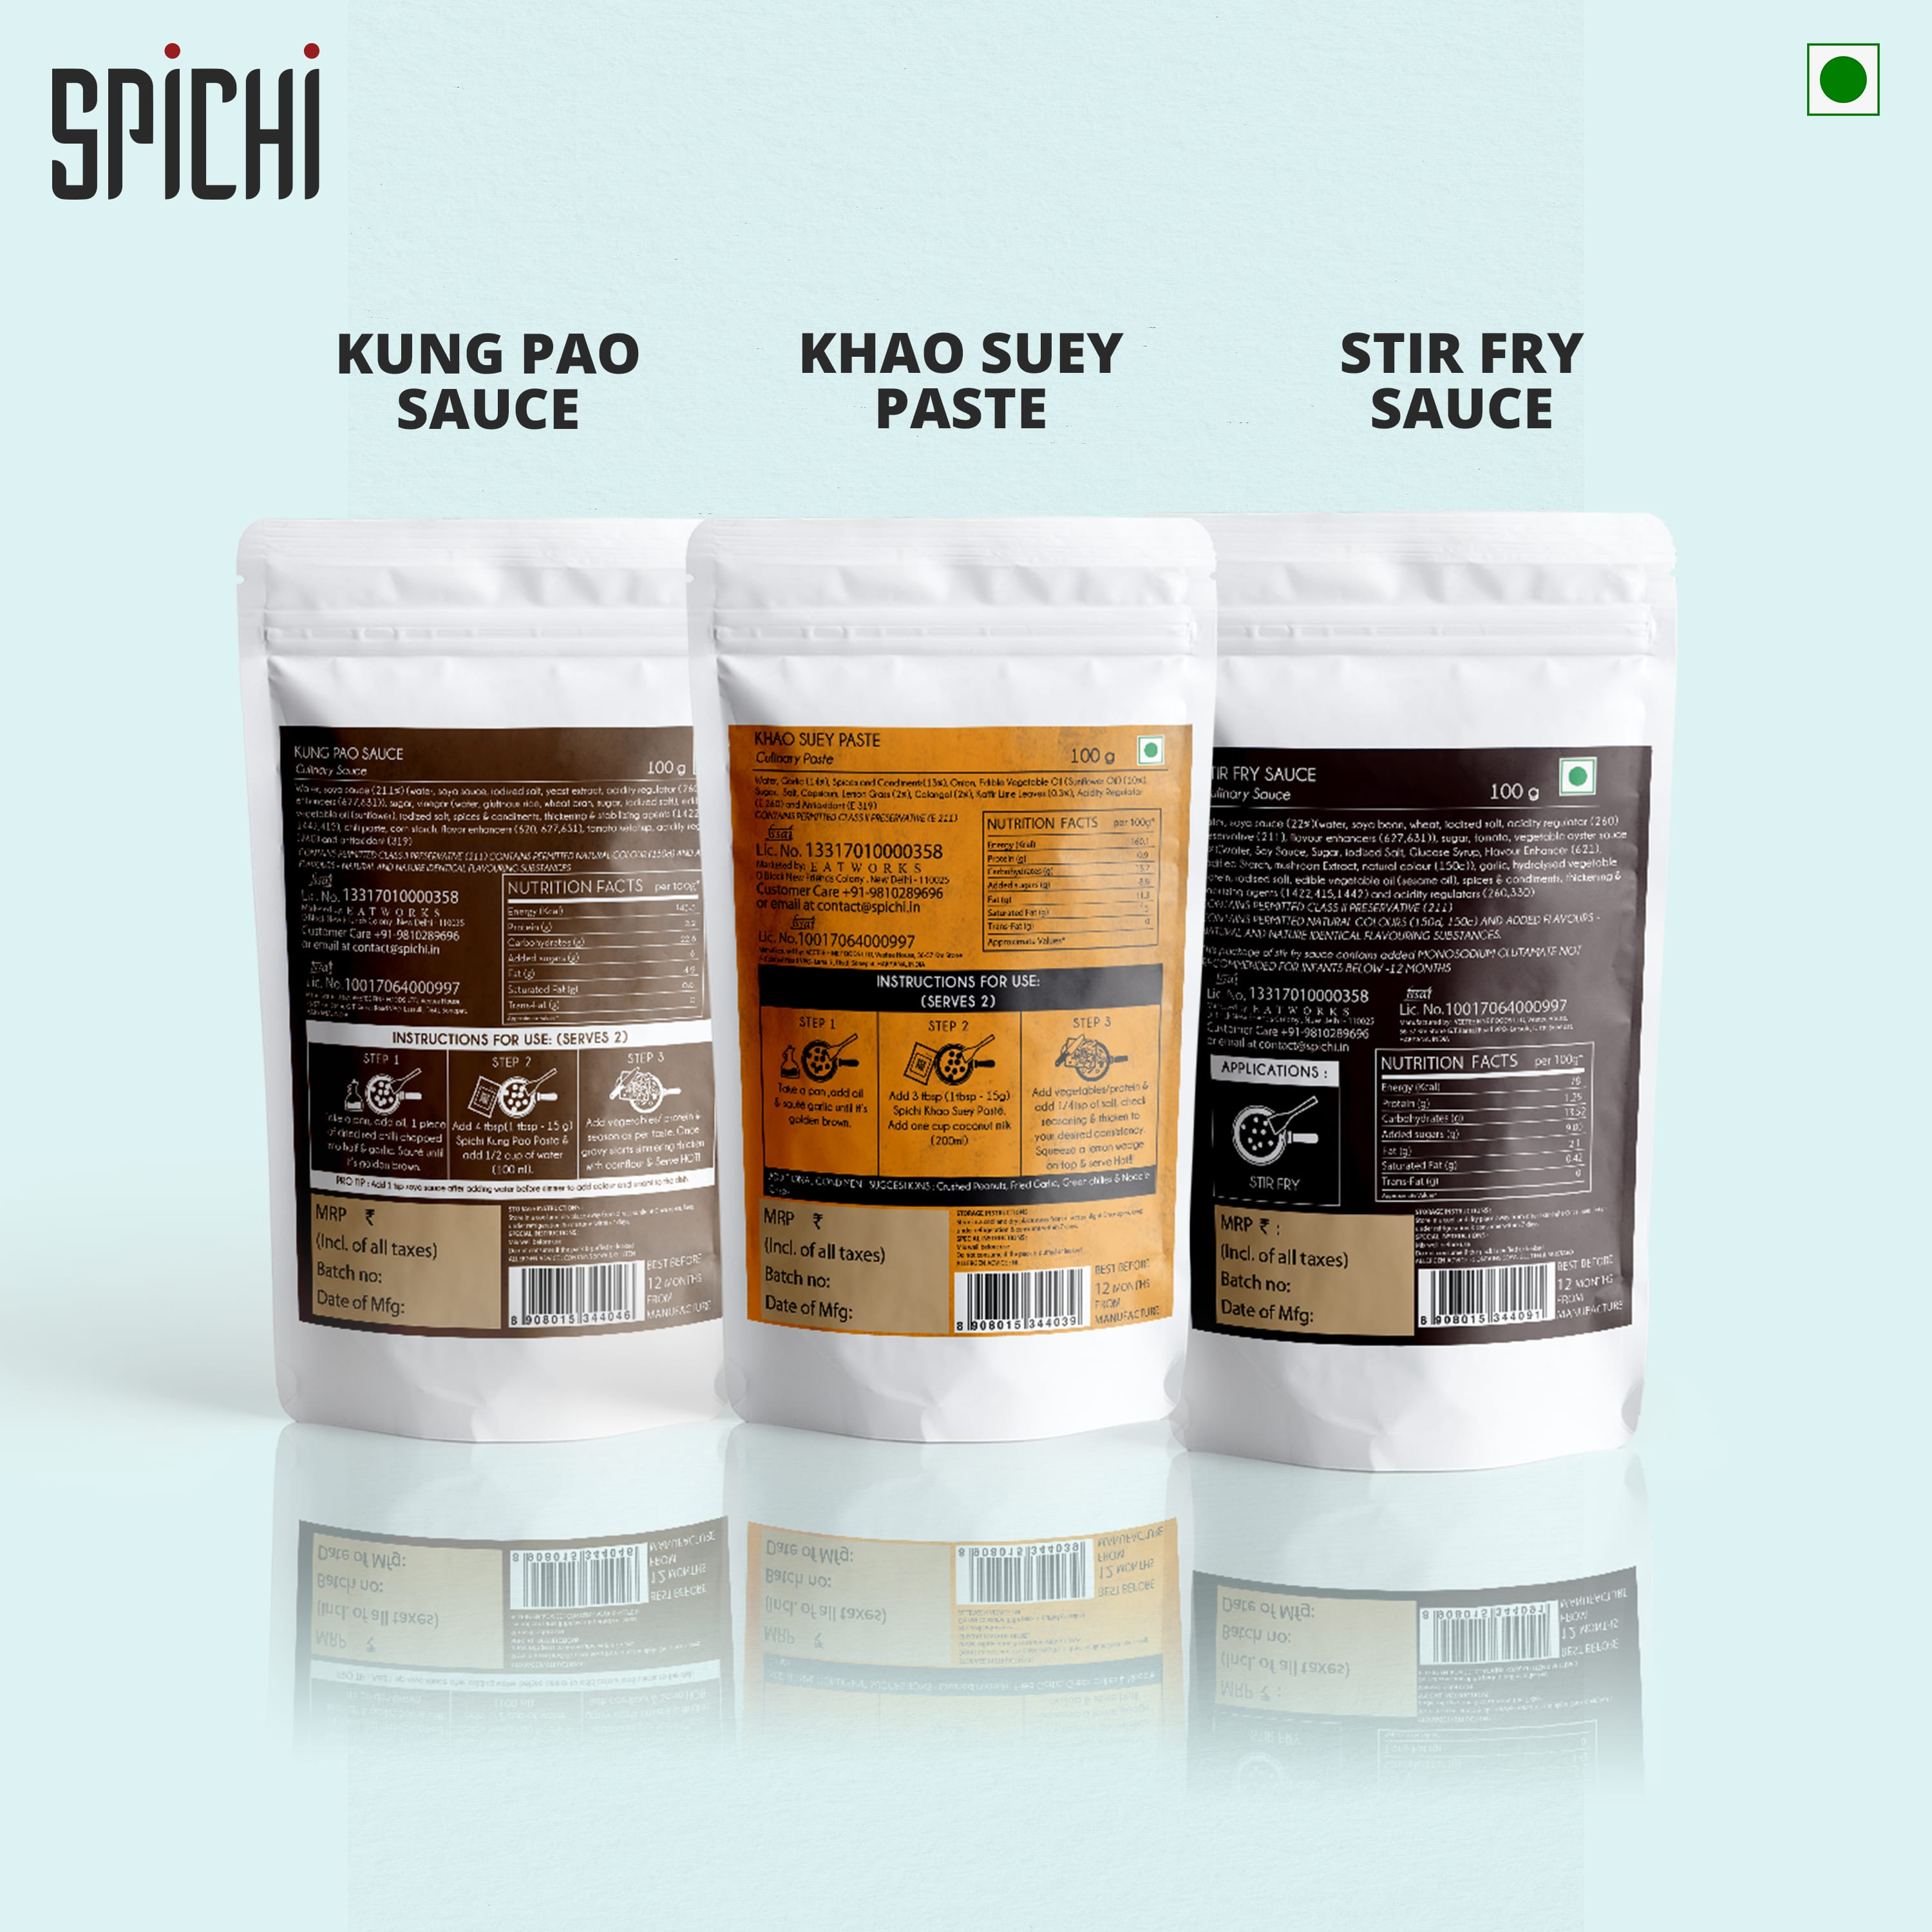 TRI PACK - KUNG PAO SAUCE, KHAO SUEY PASTE AND STIR FRY SAUCE